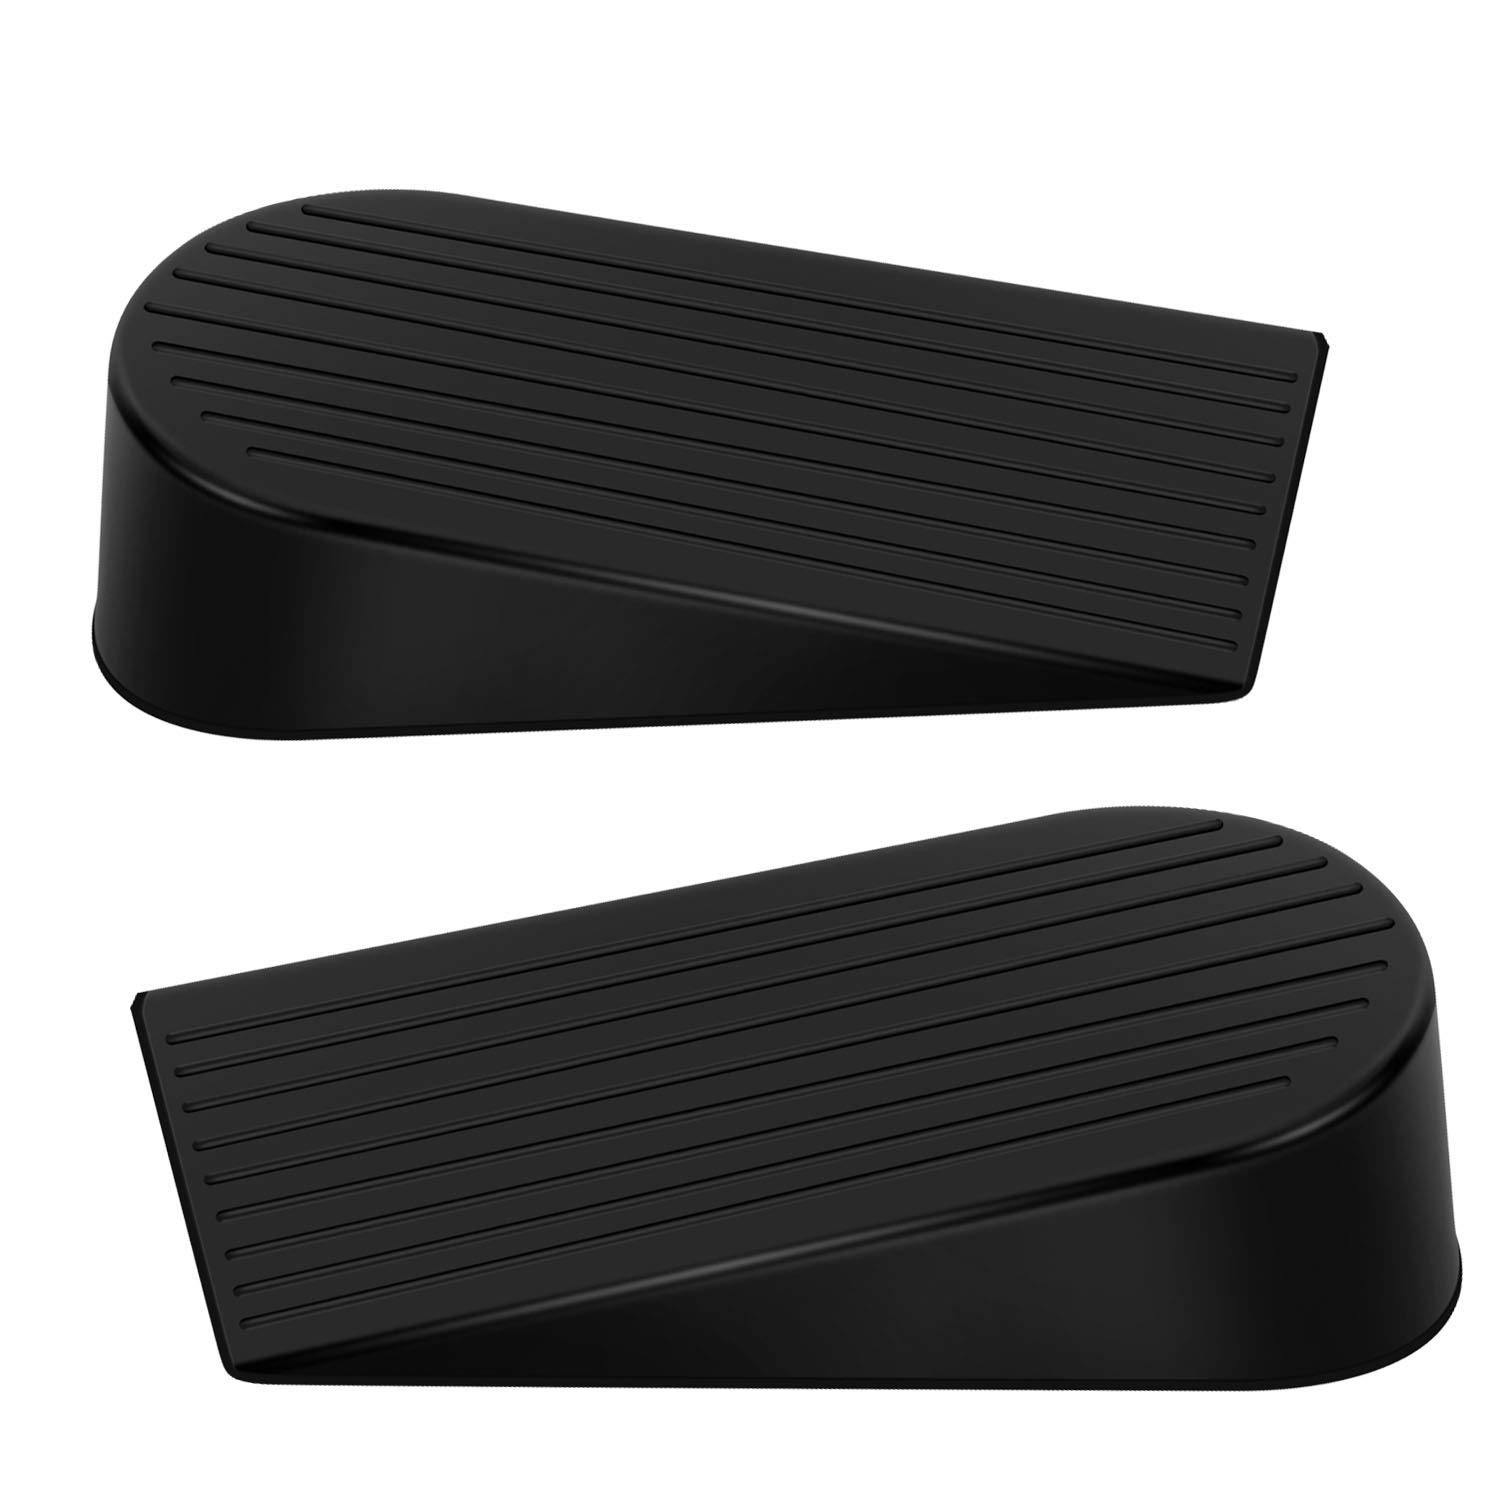 Big Door Stopper, Heavy Duty Rubber Door Stop Wedge,Multi Surface Design - EIOU - Non-Scratching Door Stop 2 Pack